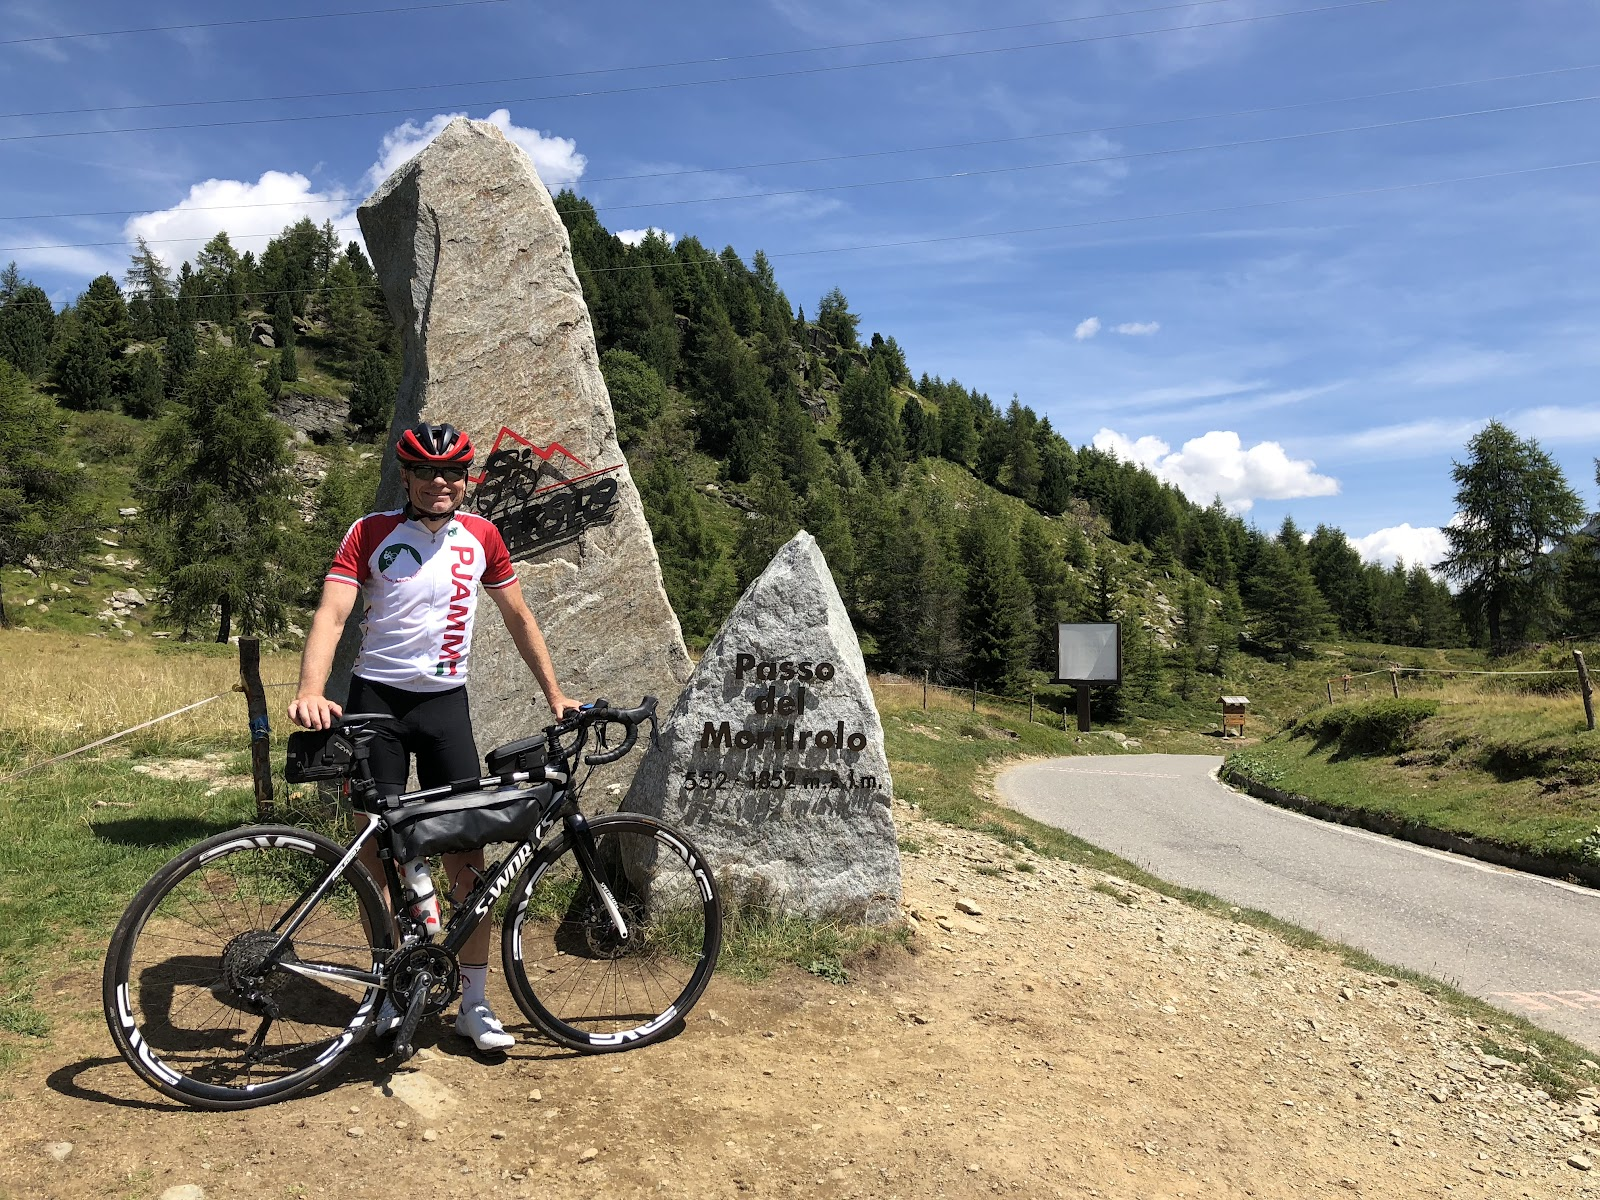 Bicycle ride of Passo del Mortirolo from Mazzo di Valtellina - John Johnson PJAMM Cycling at the pass sign